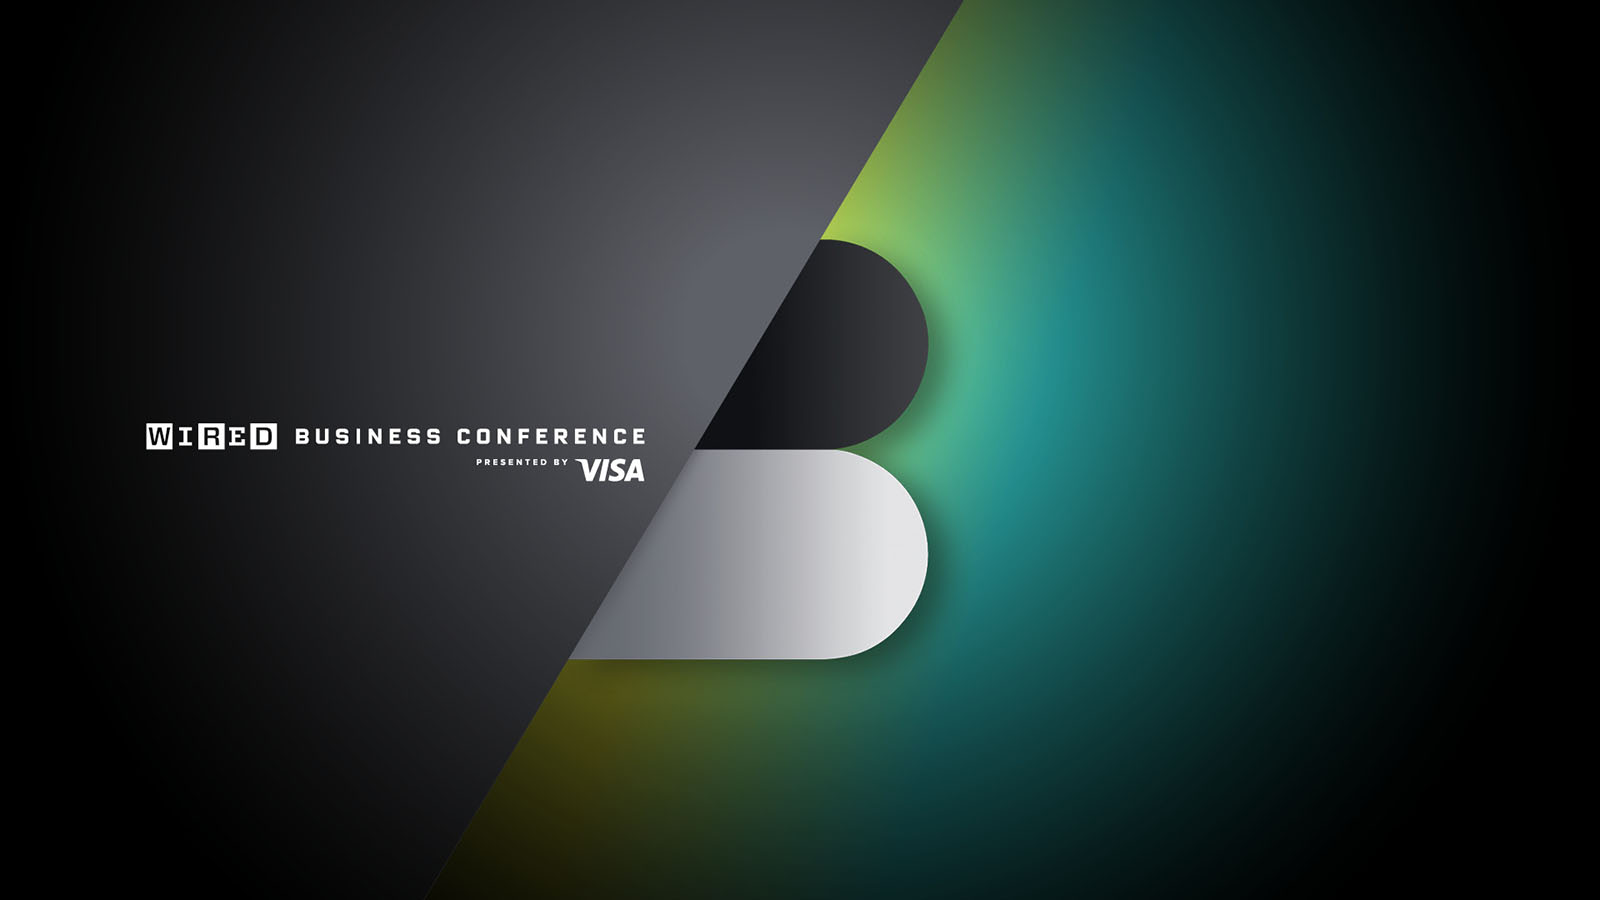 wired business conference